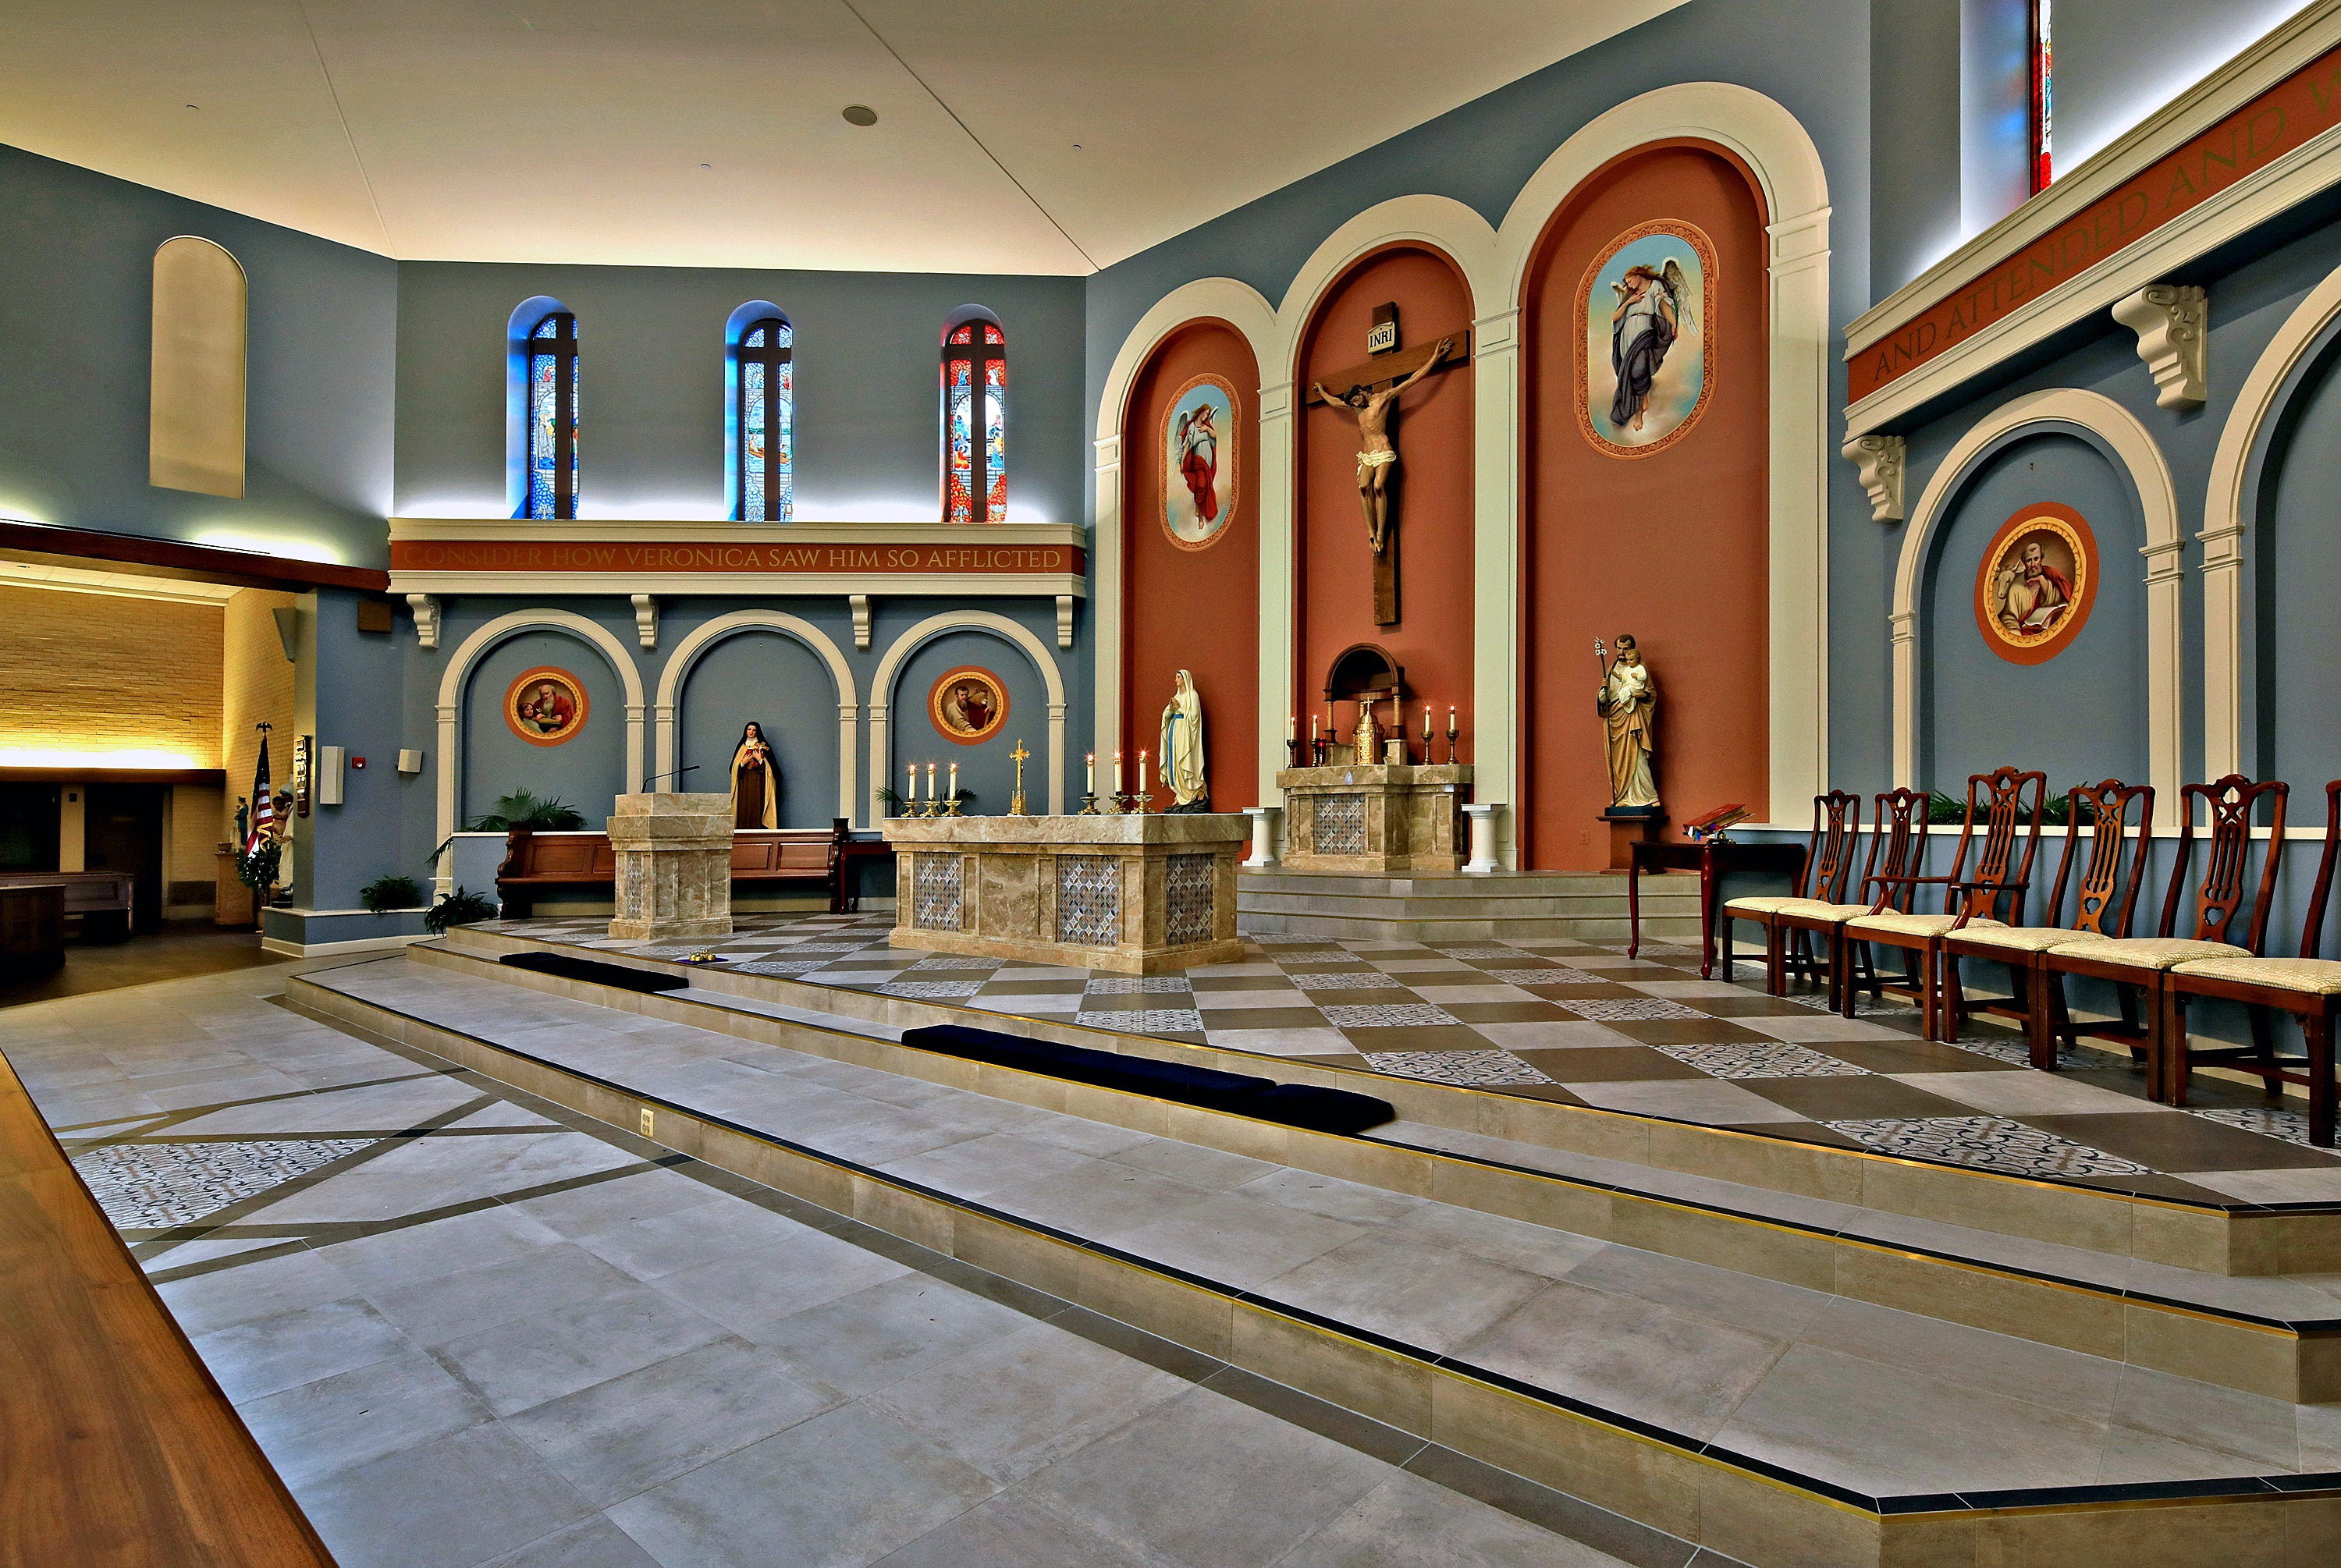 St. Veronica Catholic Church Sanctuary Renovation